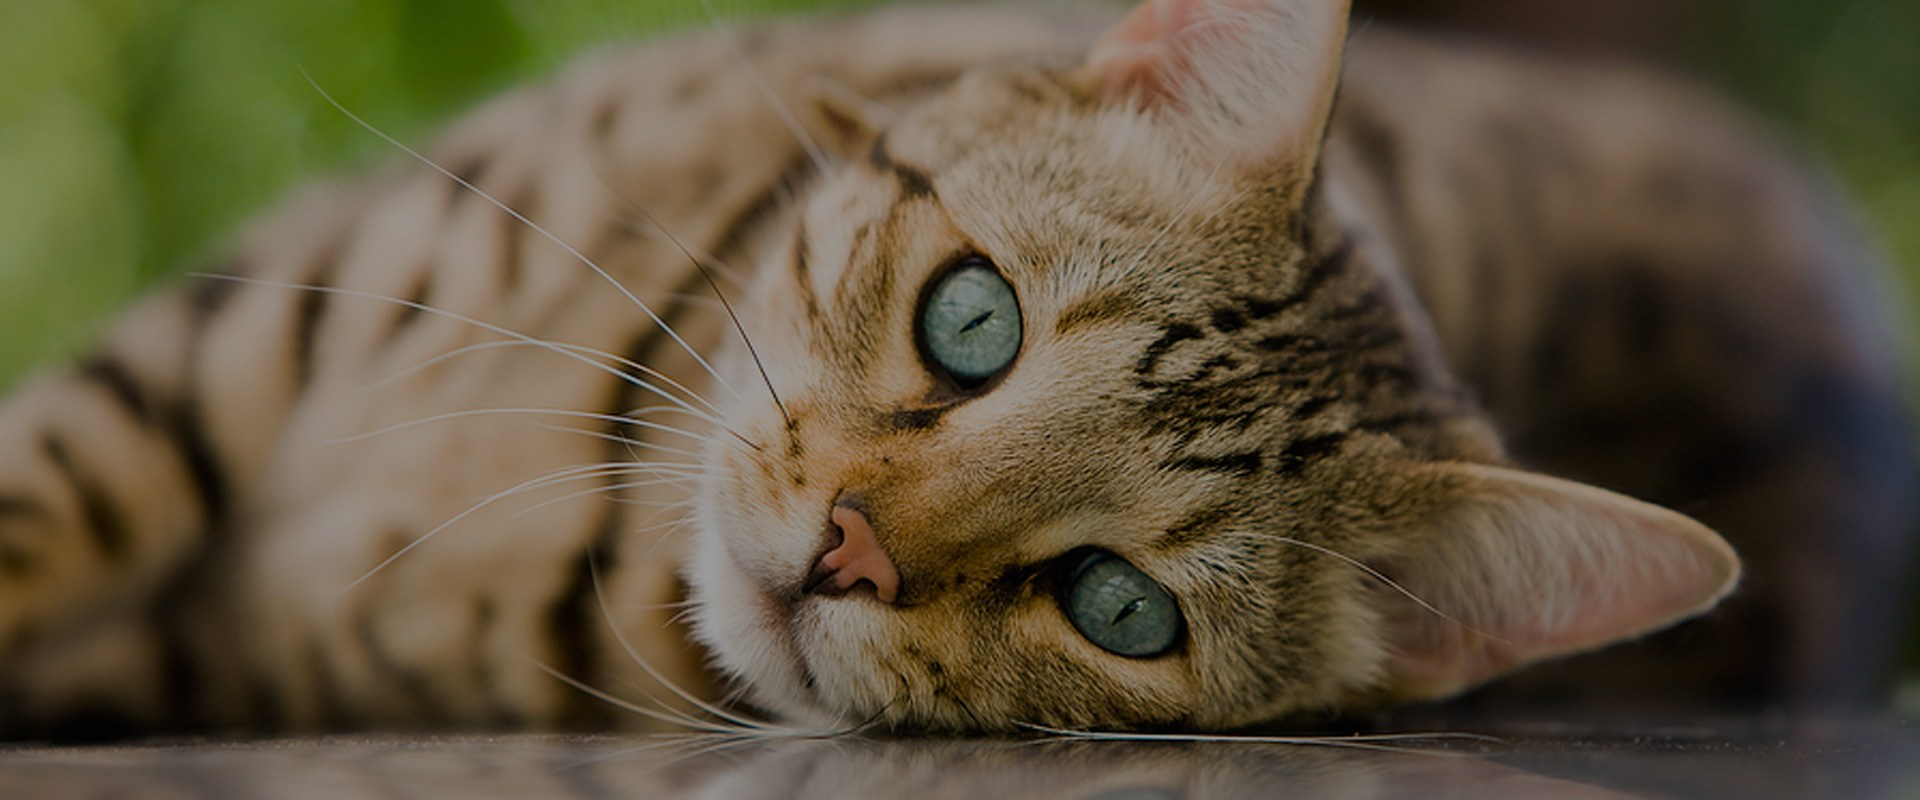 Veterinary Ophthalmology Services Animal Eye Care Clinics